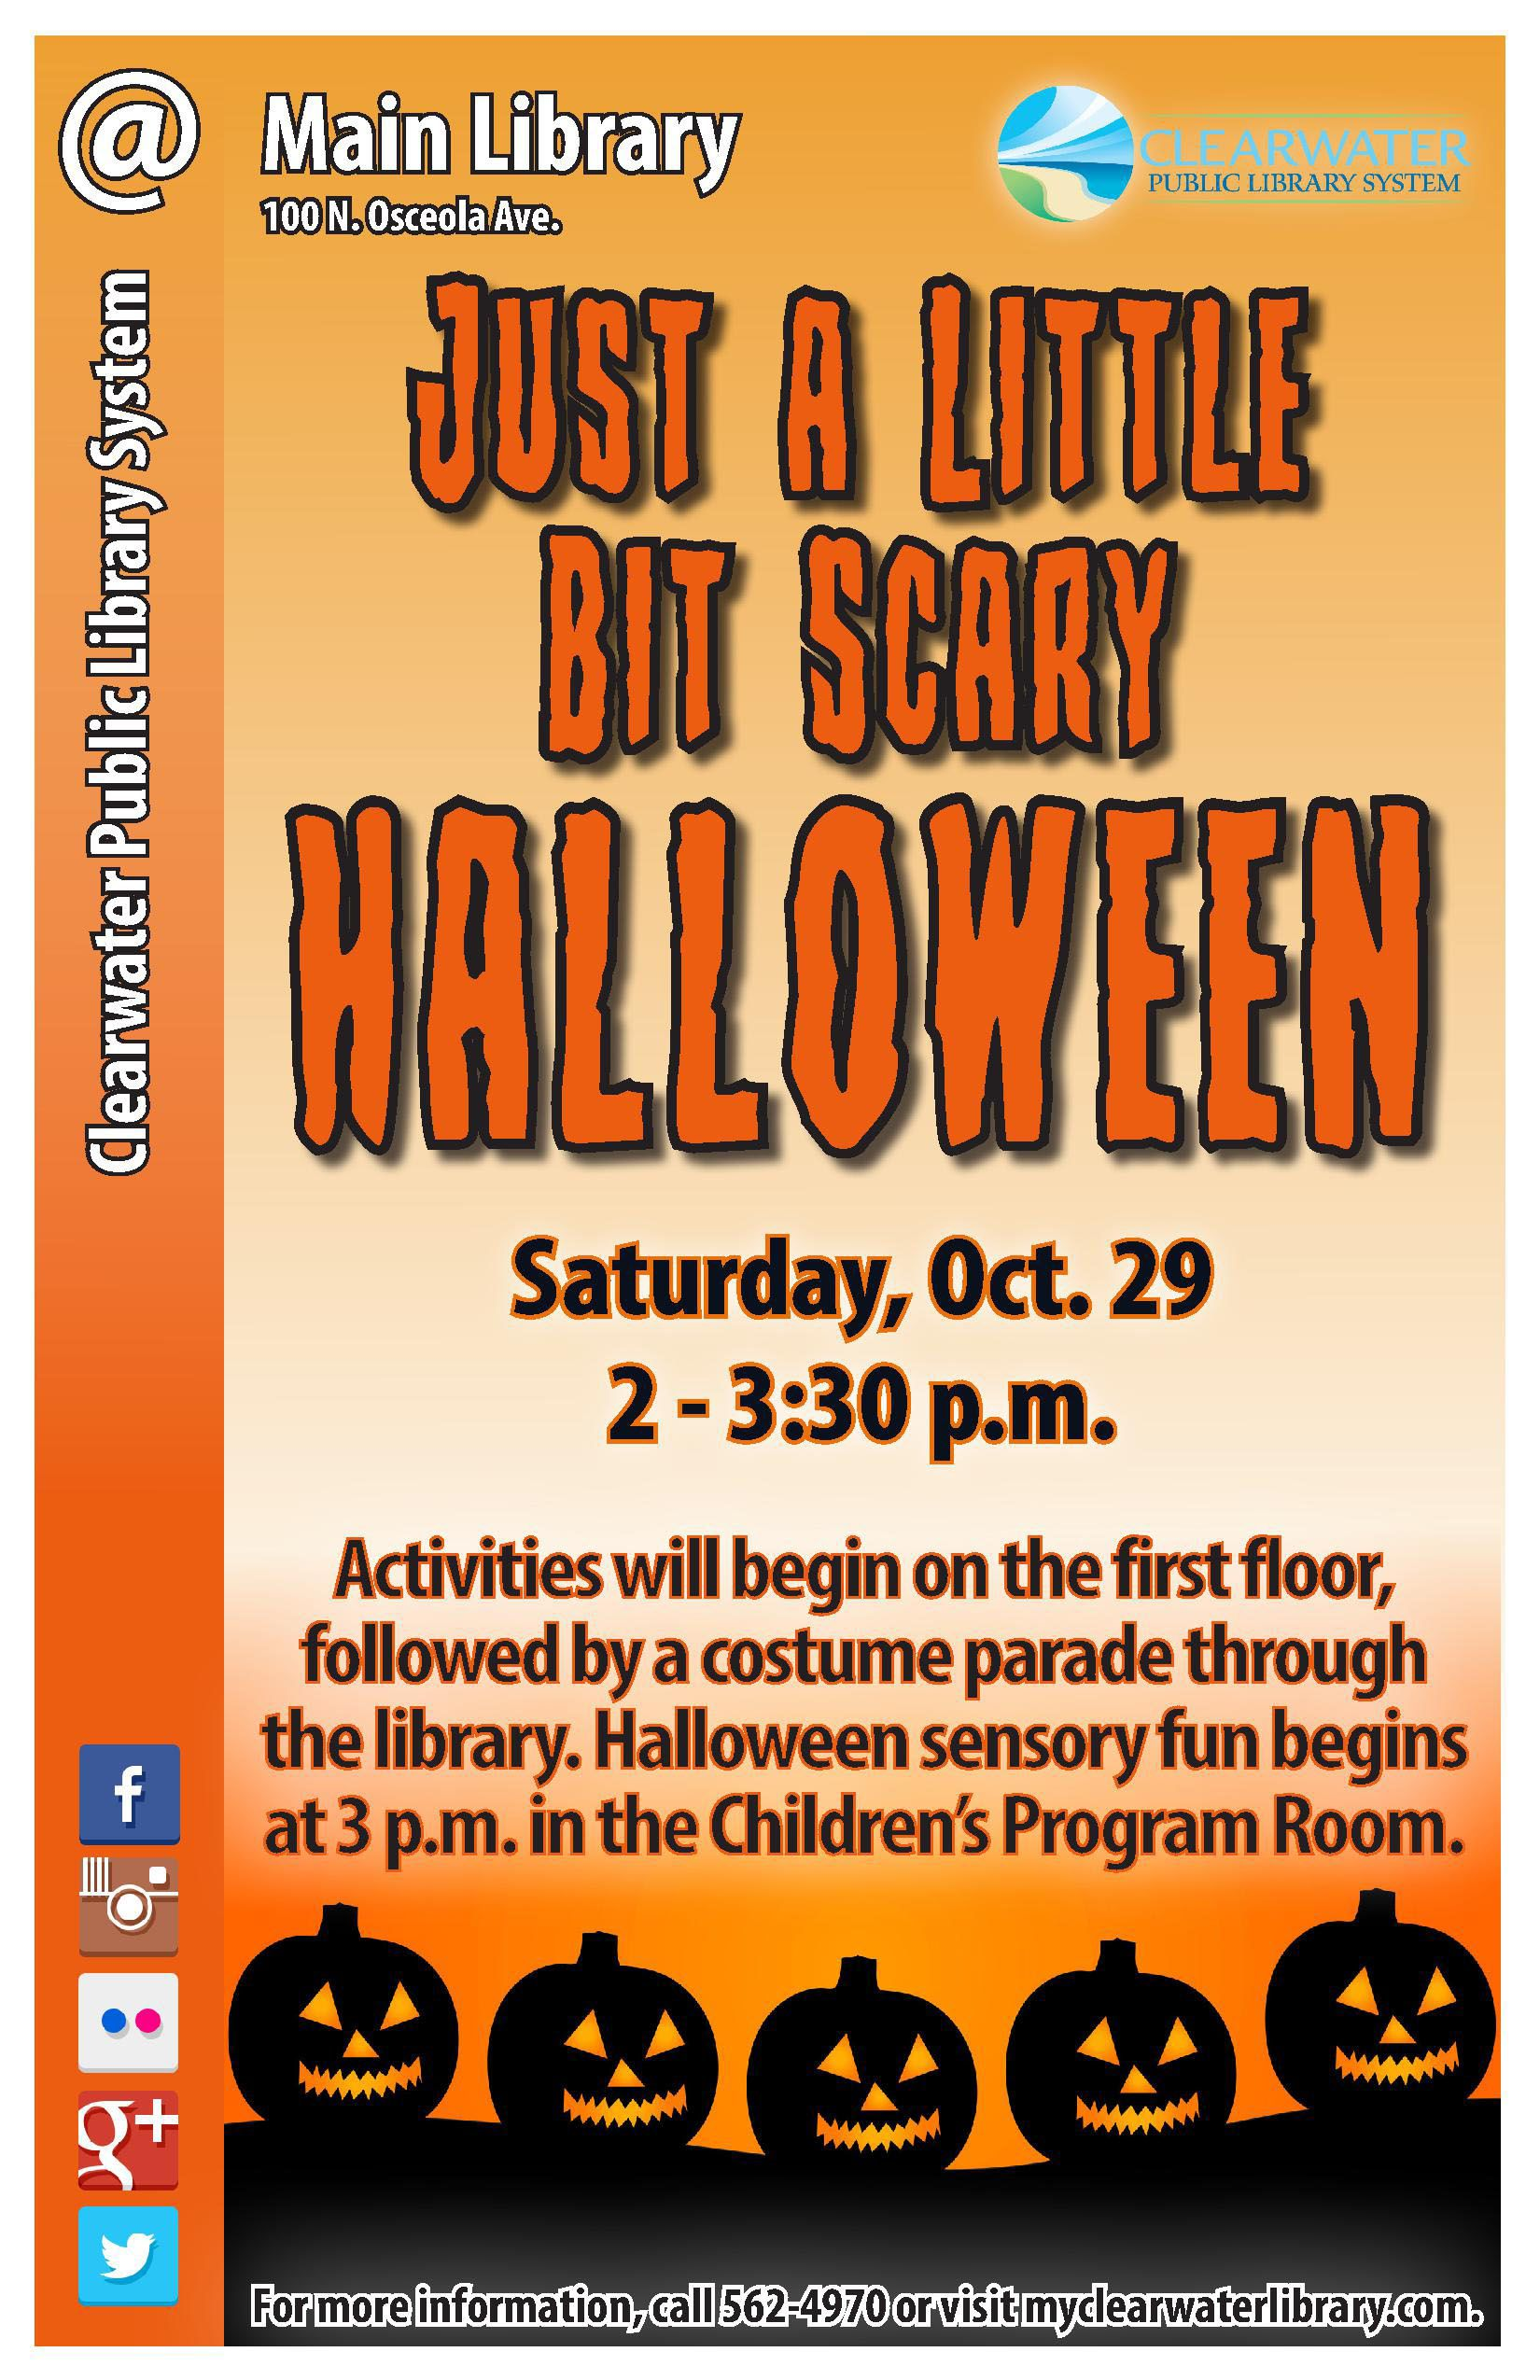 Halloween stories, crafts, sensory activities and a costume